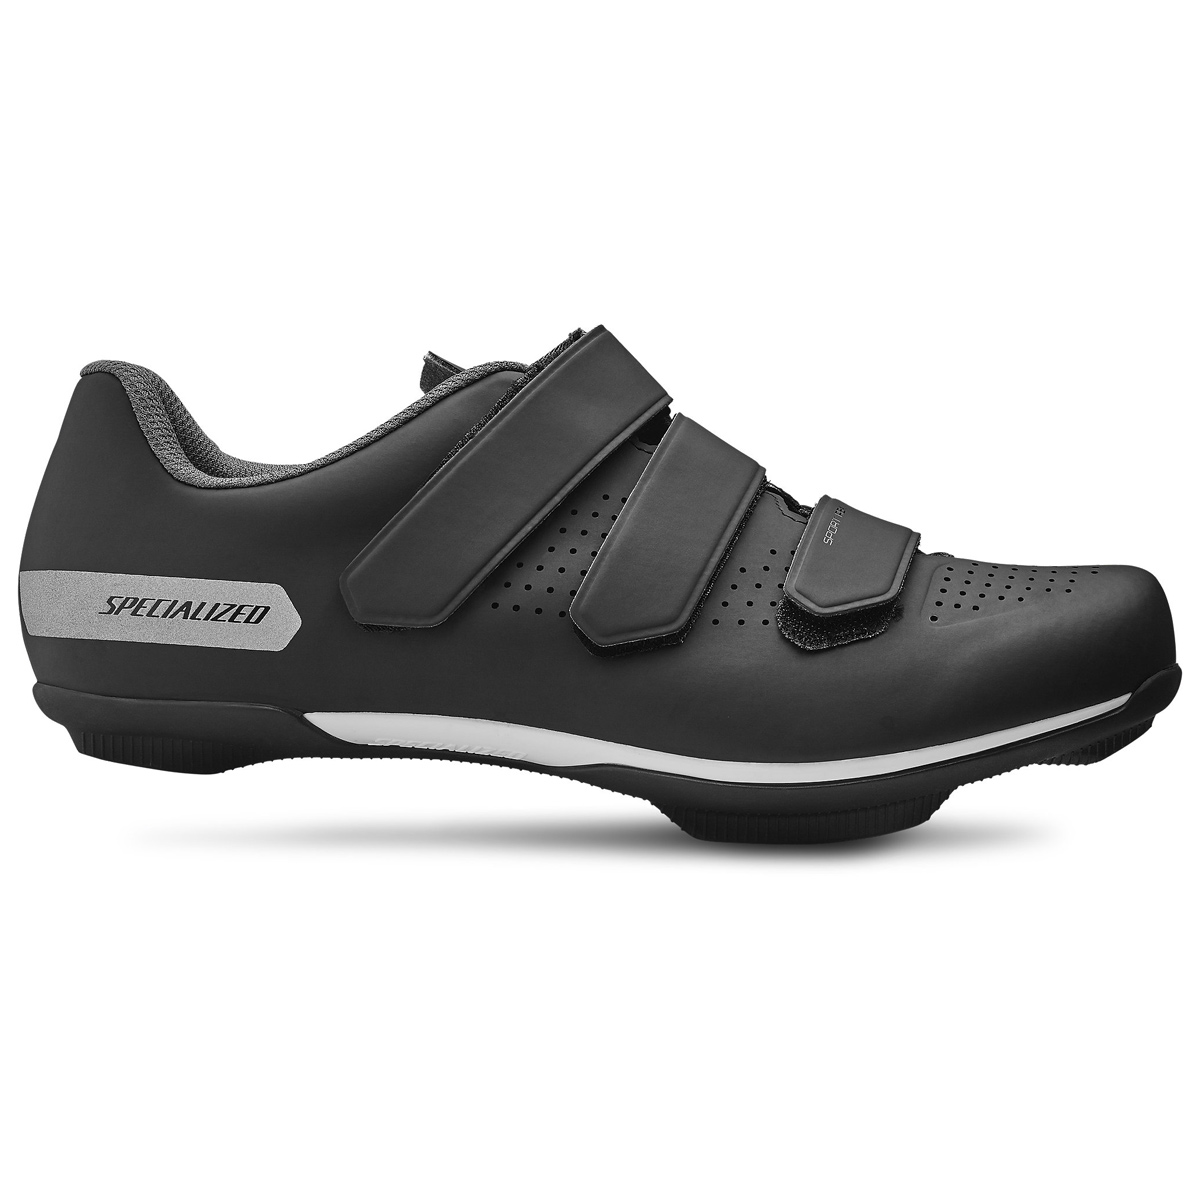 CHAUSSURES SPECIALIZED SPORT RBX VELO DE ROUTE GRAVEL CYCLOCROSS